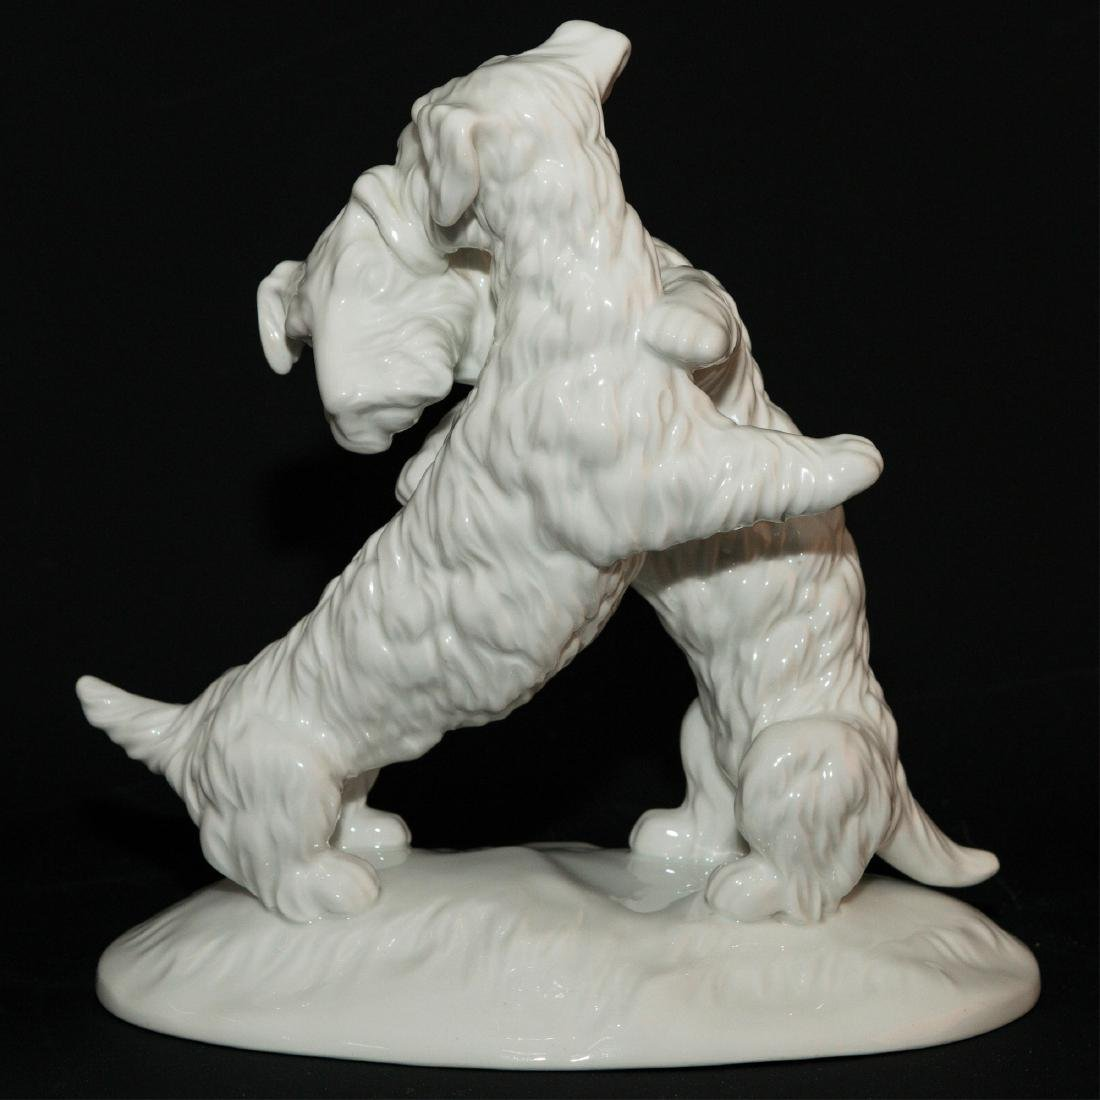 KPM BERLIN GERMANY LARGE PORCELAIN FIGURINE DOGS